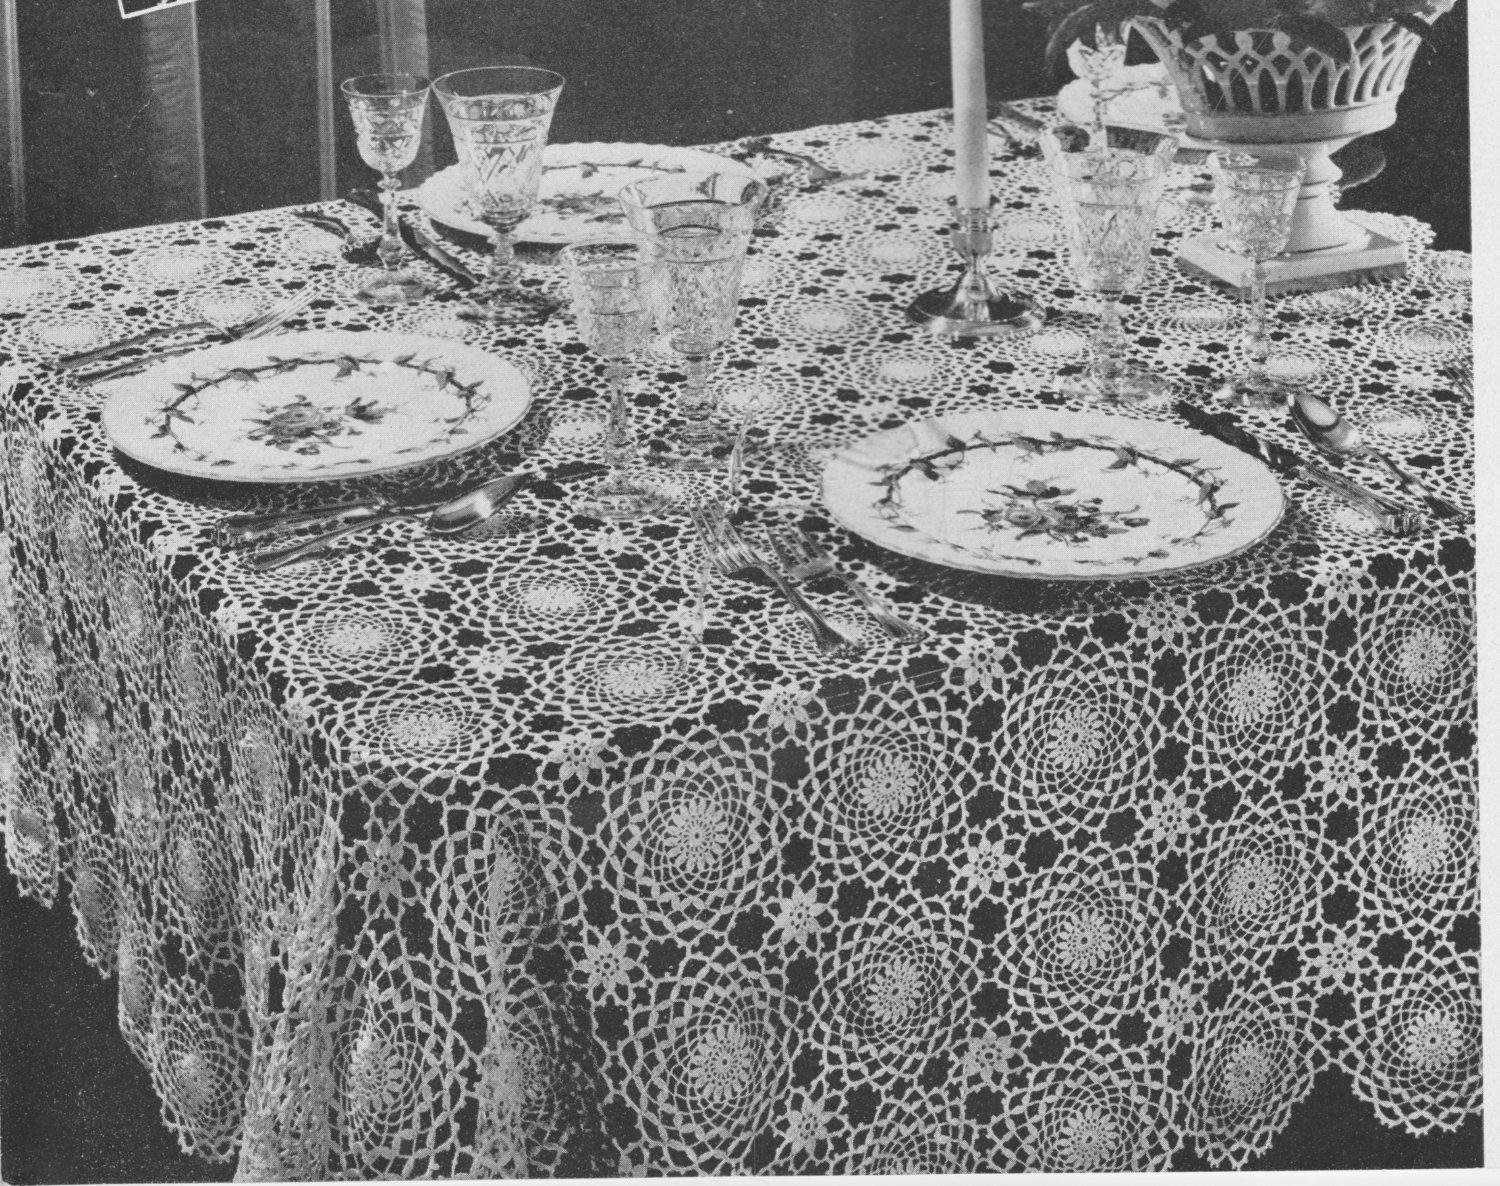 crochet booties pattern baby booties pattern crochet hat pattern 397 vintage 1940 s tablecloth crochet pattern retro home decor dining table free patterns housewarming gift pdf instant download